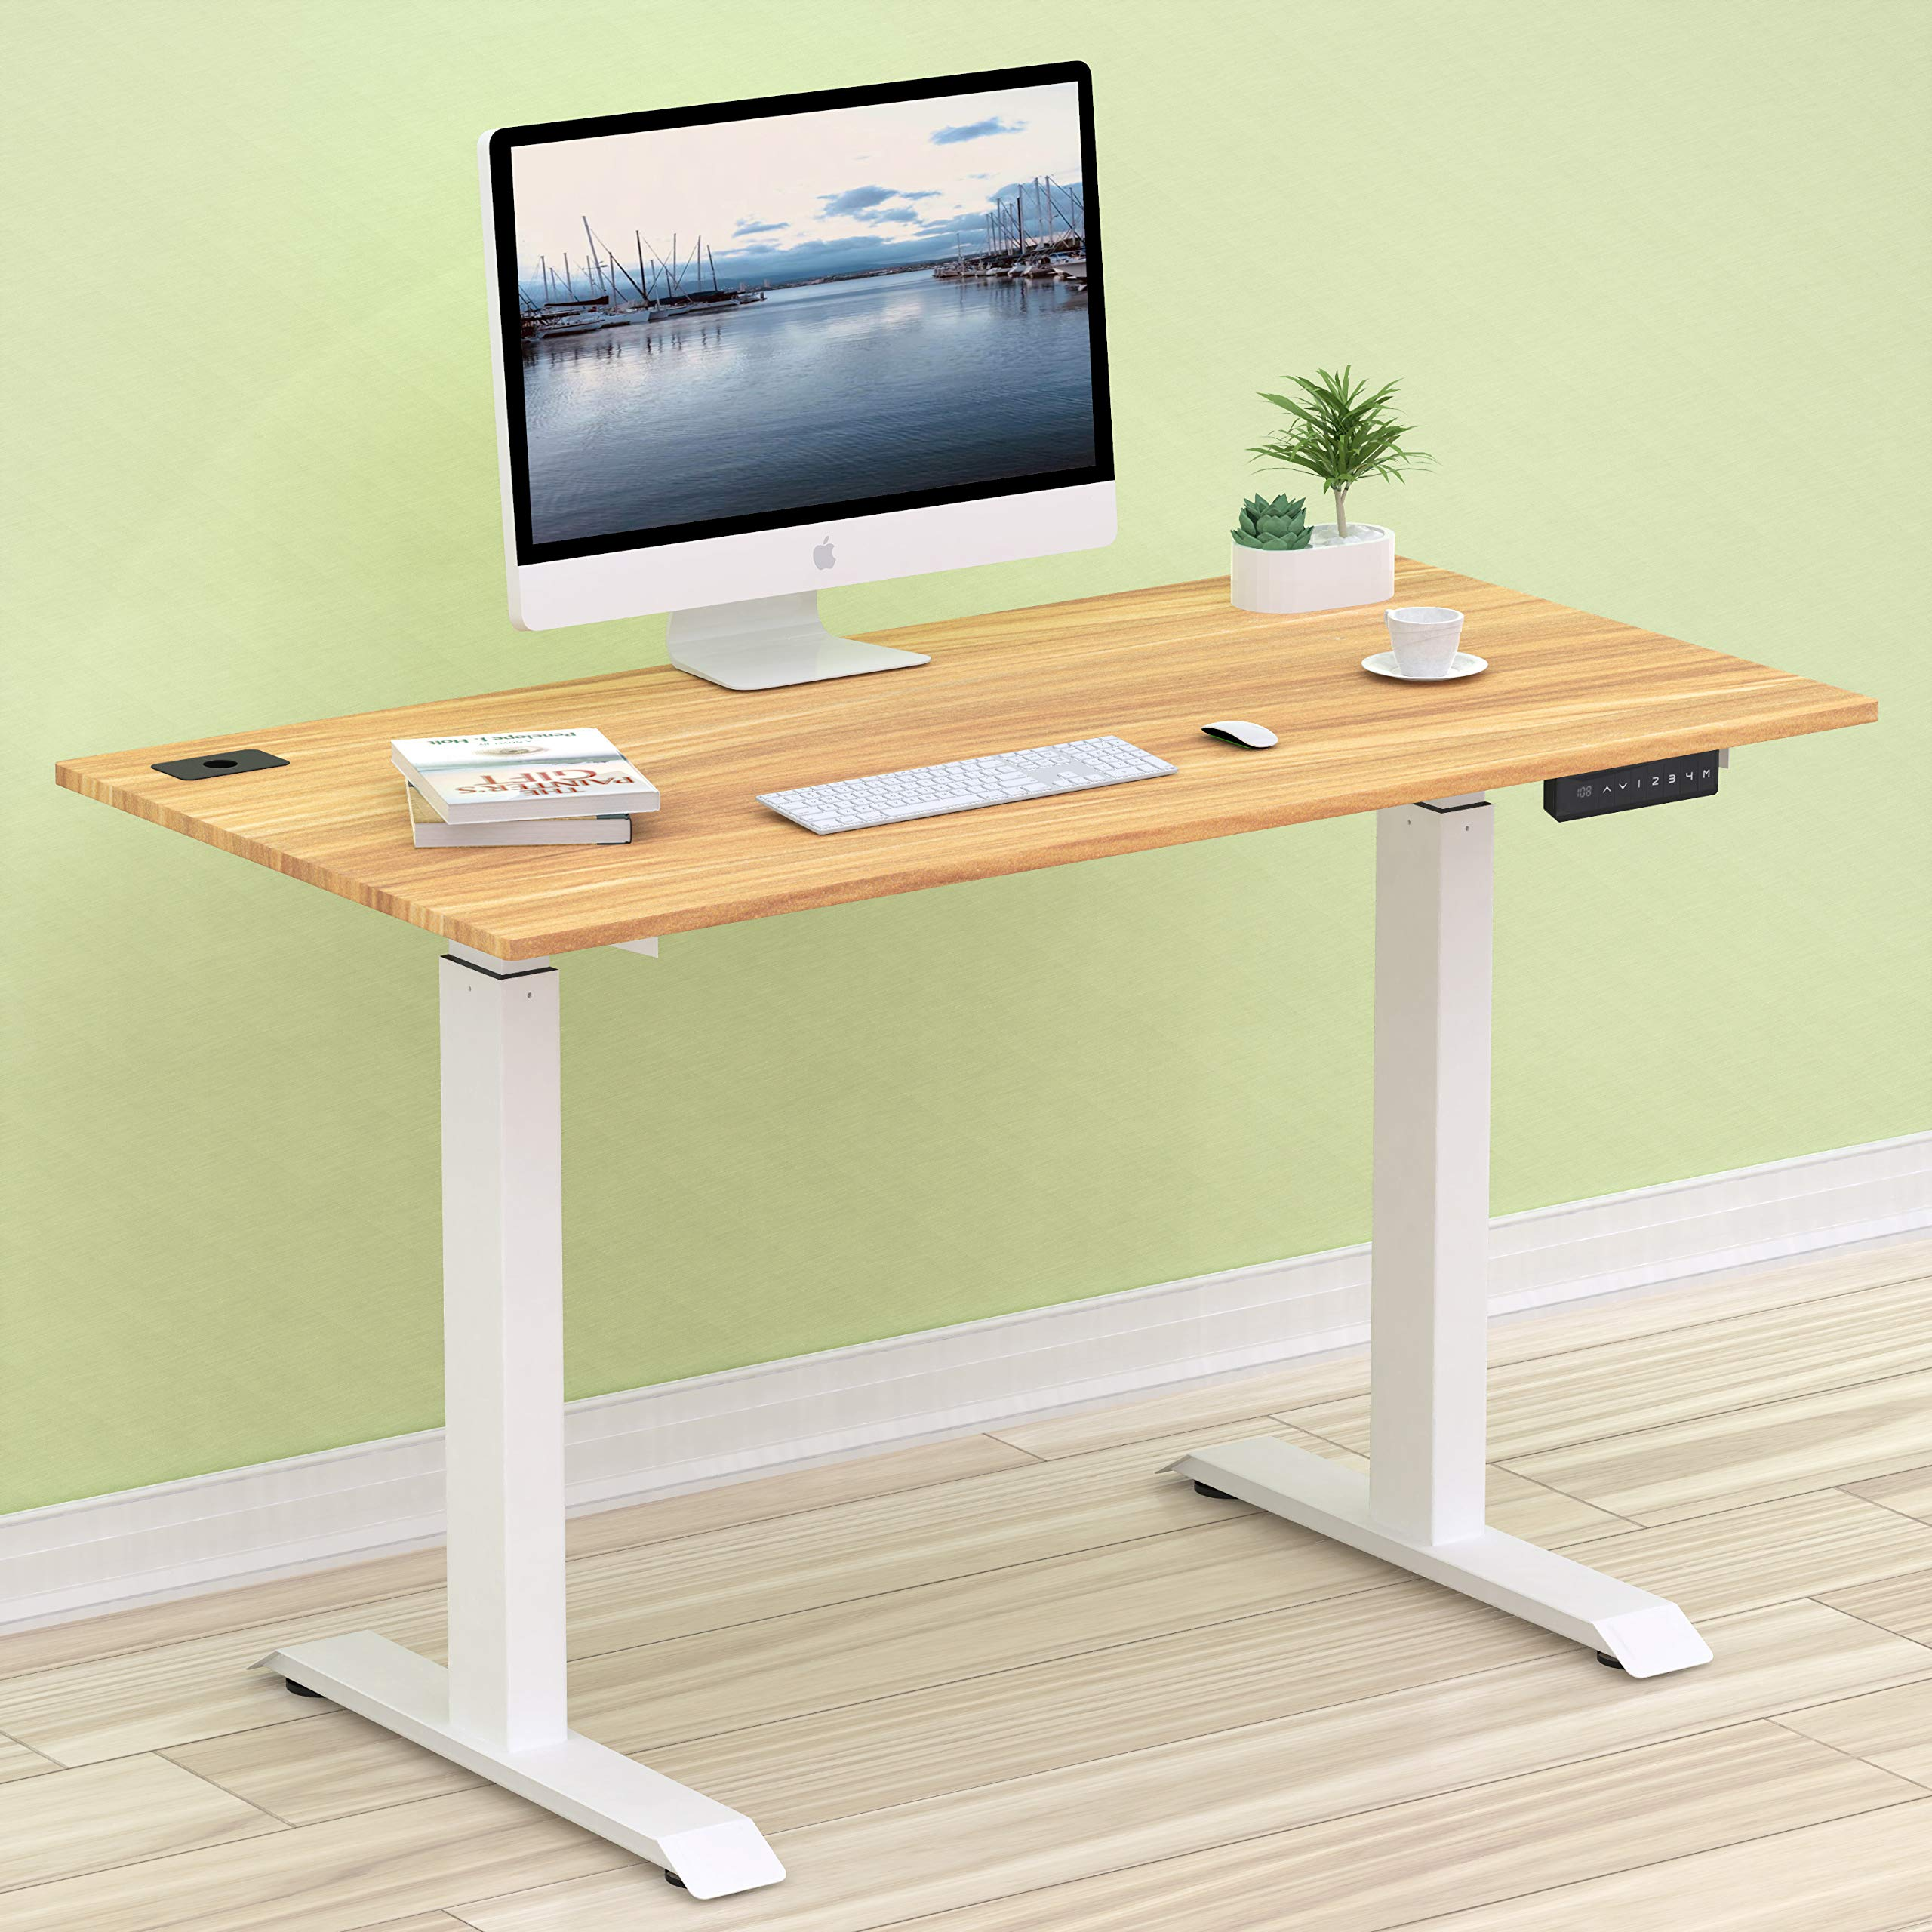 SHW Electric Height Adjustable Computer Desk, 48 x 24 Inches, Light Cherry by SHW